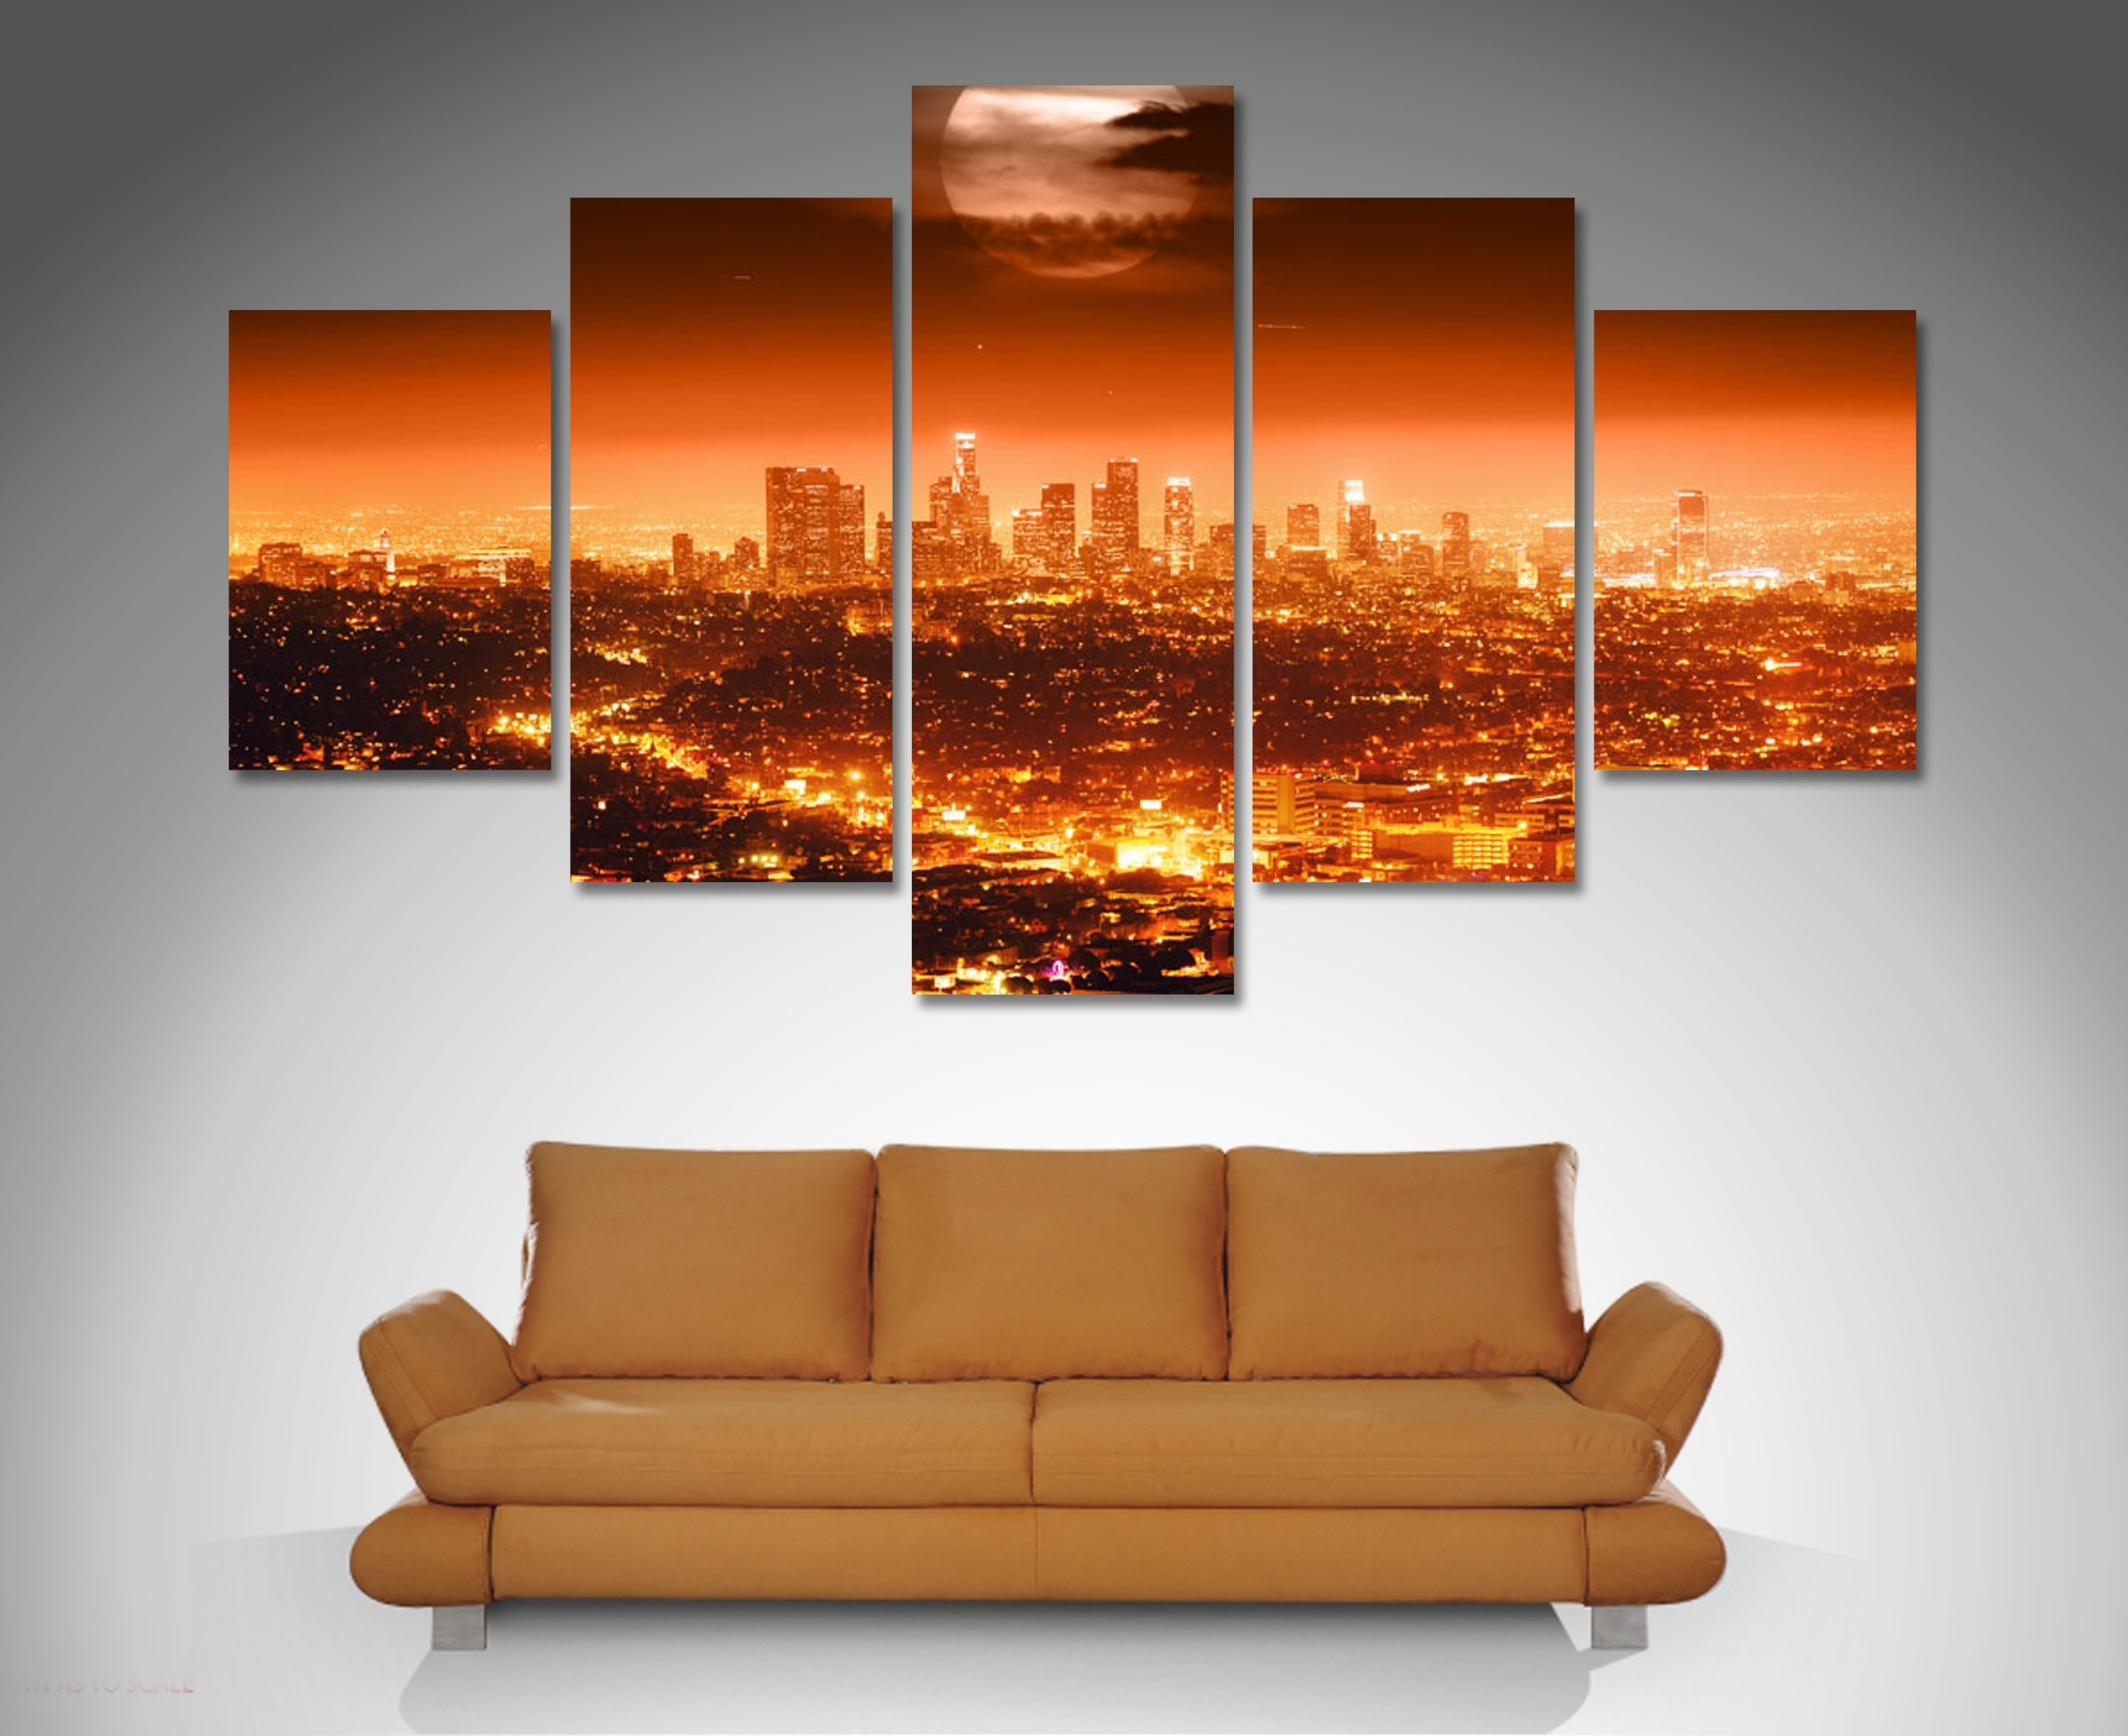 Los Angeles 5 Panel Wall Art Canvas Print Intended For 2018 5 Panel Wall Art (Gallery 5 of 20)